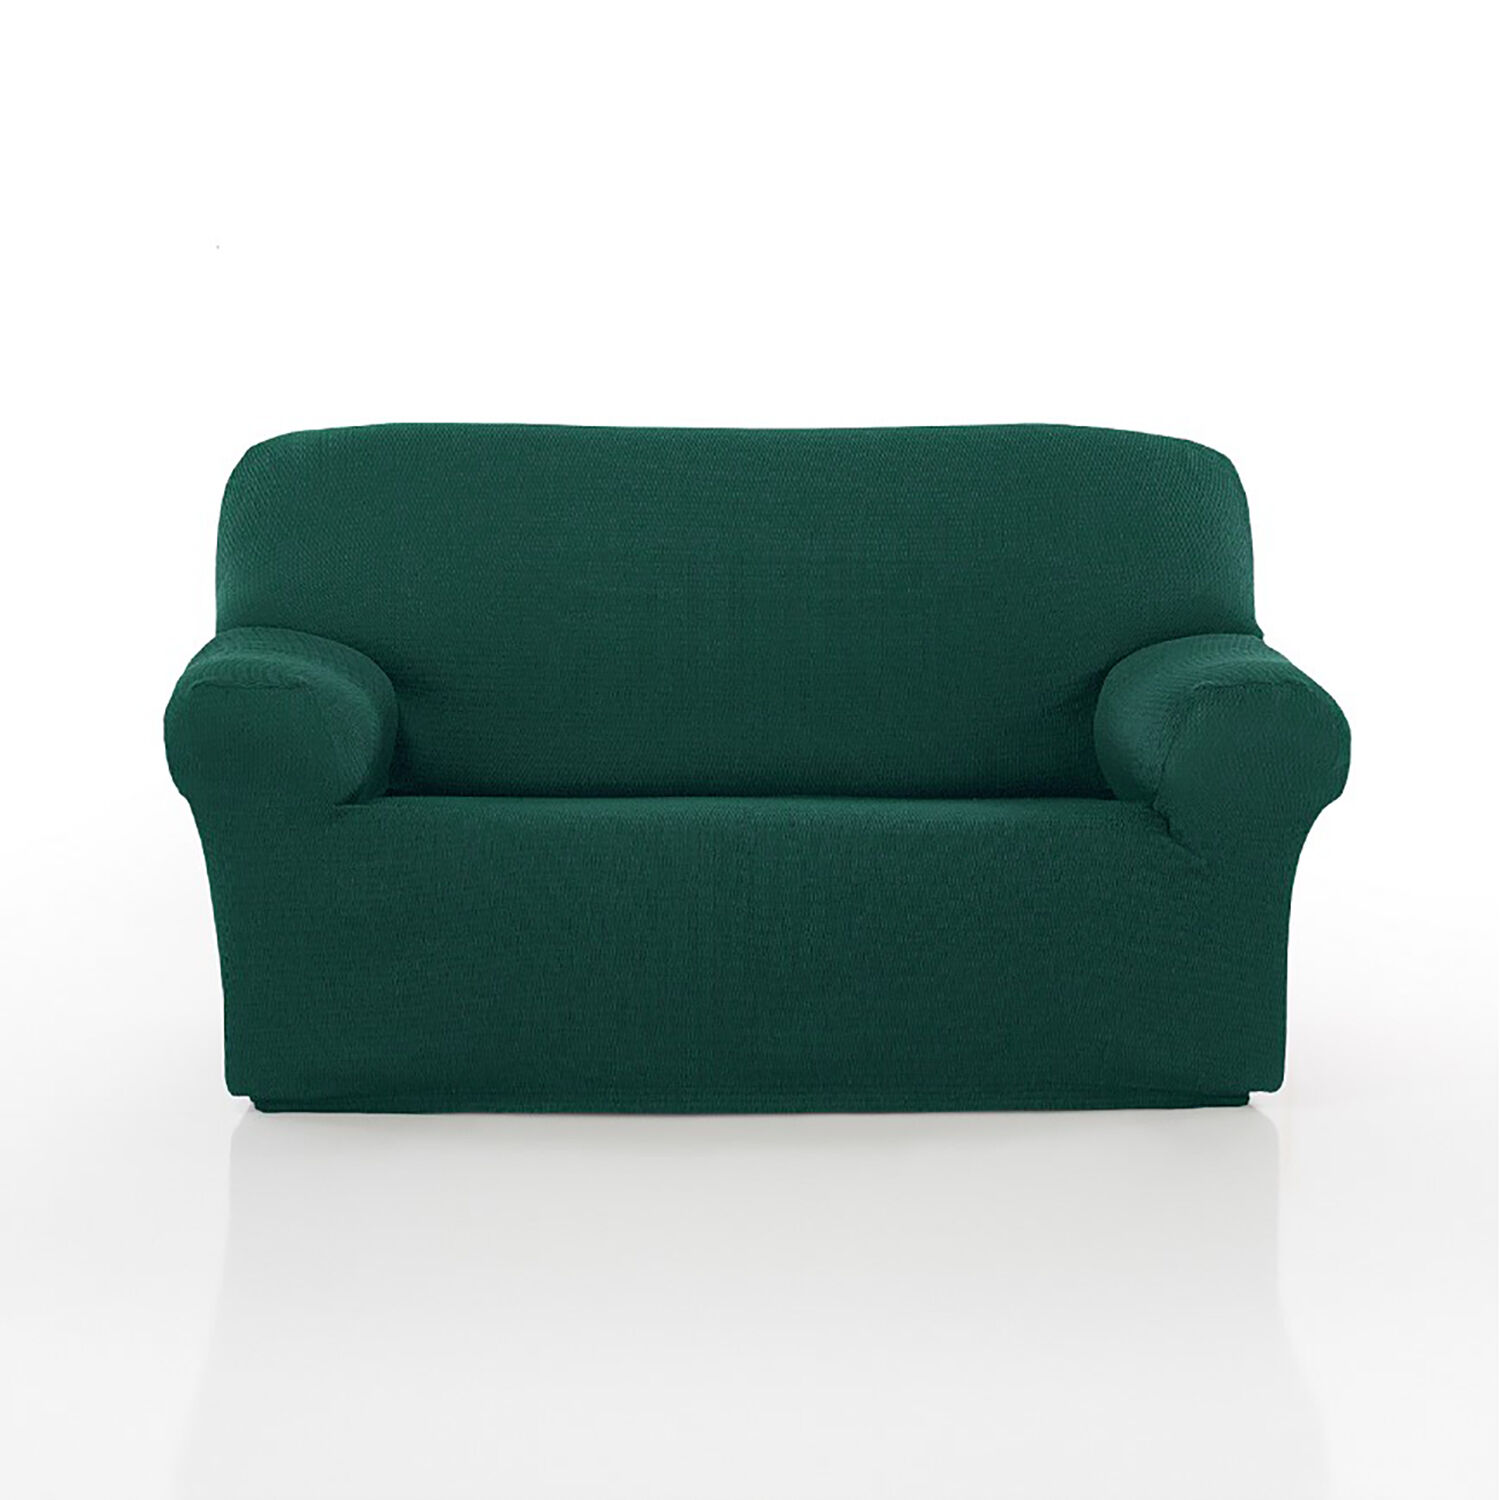 sofa covers low price repair sohna road gurgaon home store more easystretch 2 seater cover green